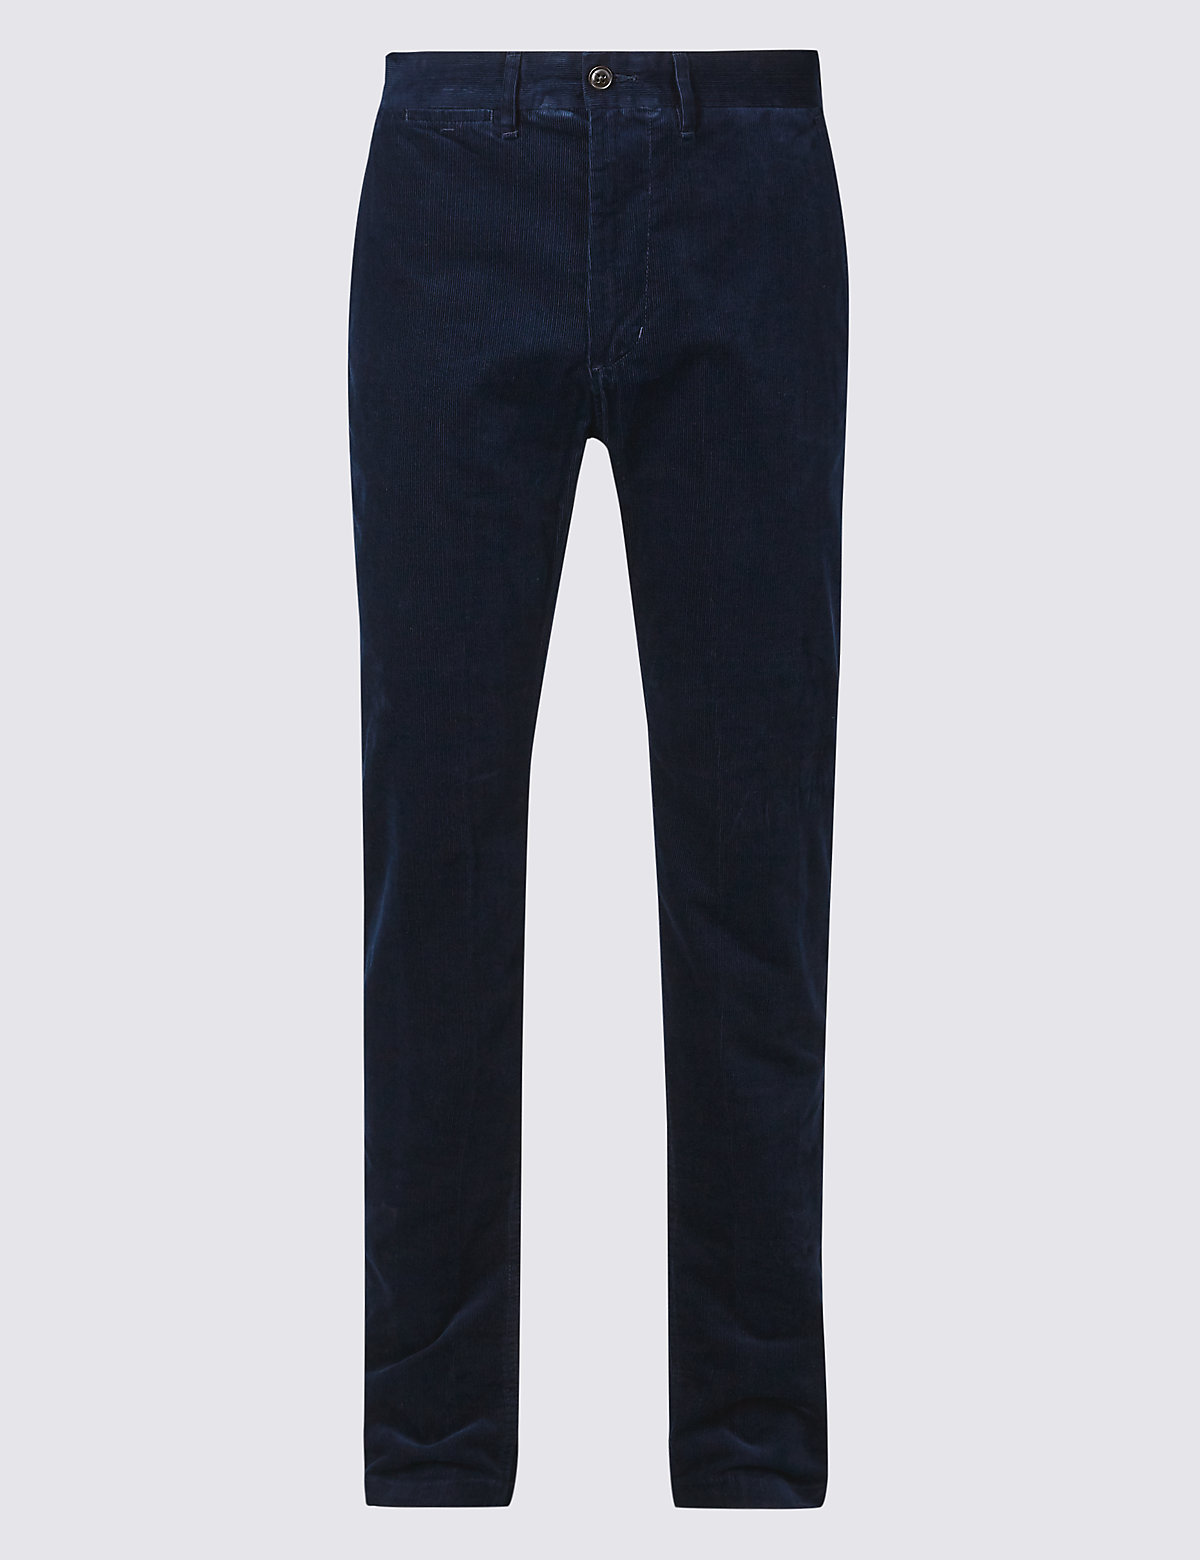 Marks & Spencer Navy Straight Fit Corduroy with Stretch